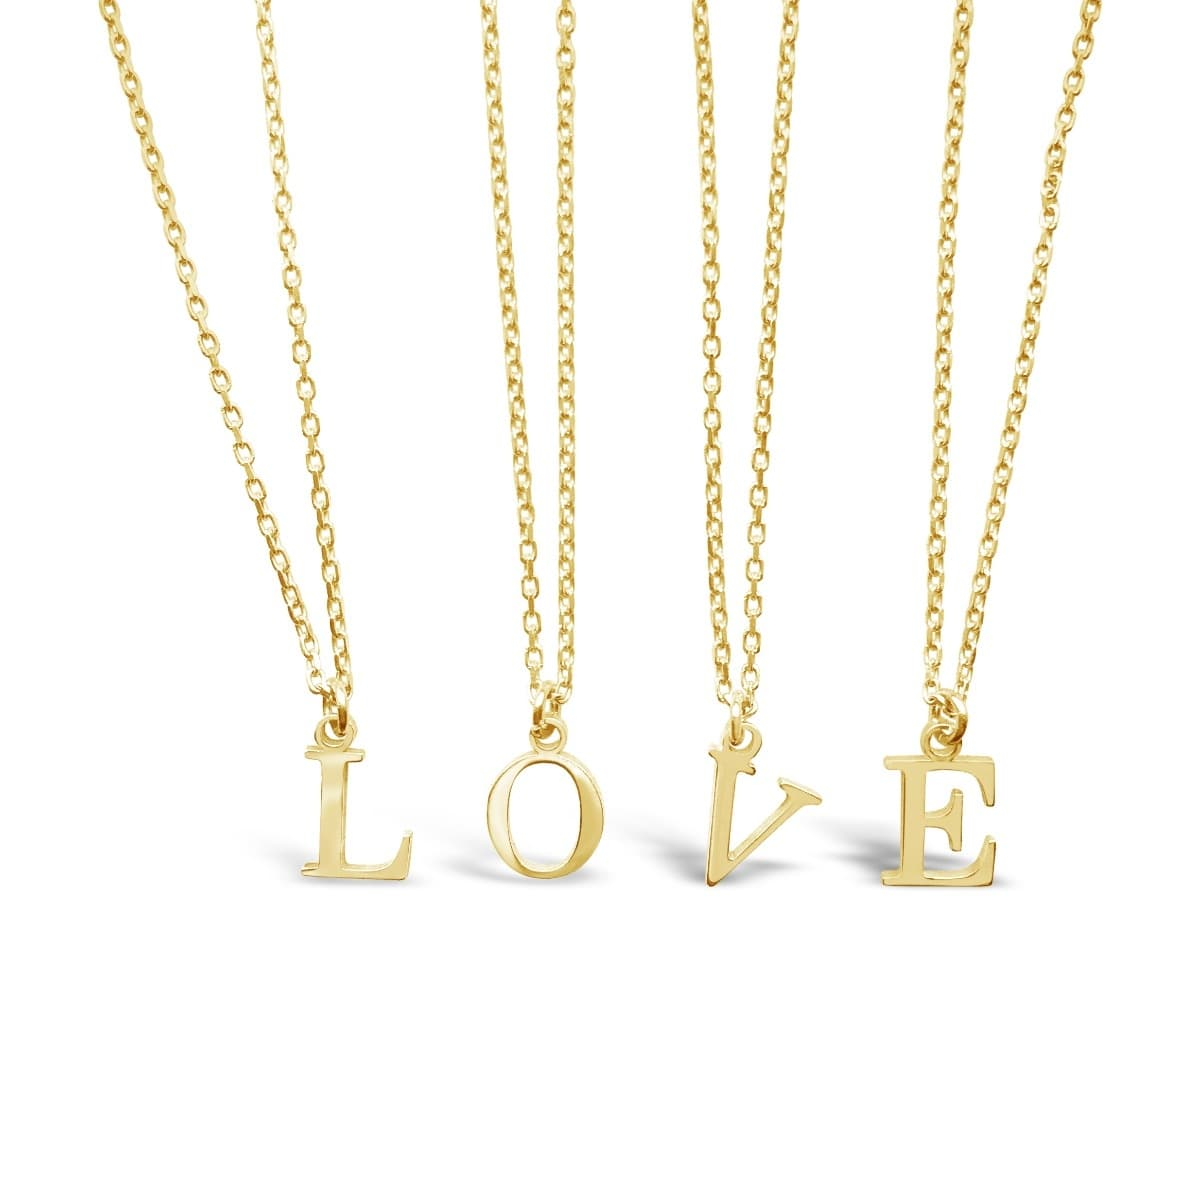 Gold Vermeil Initial Charm Necklace